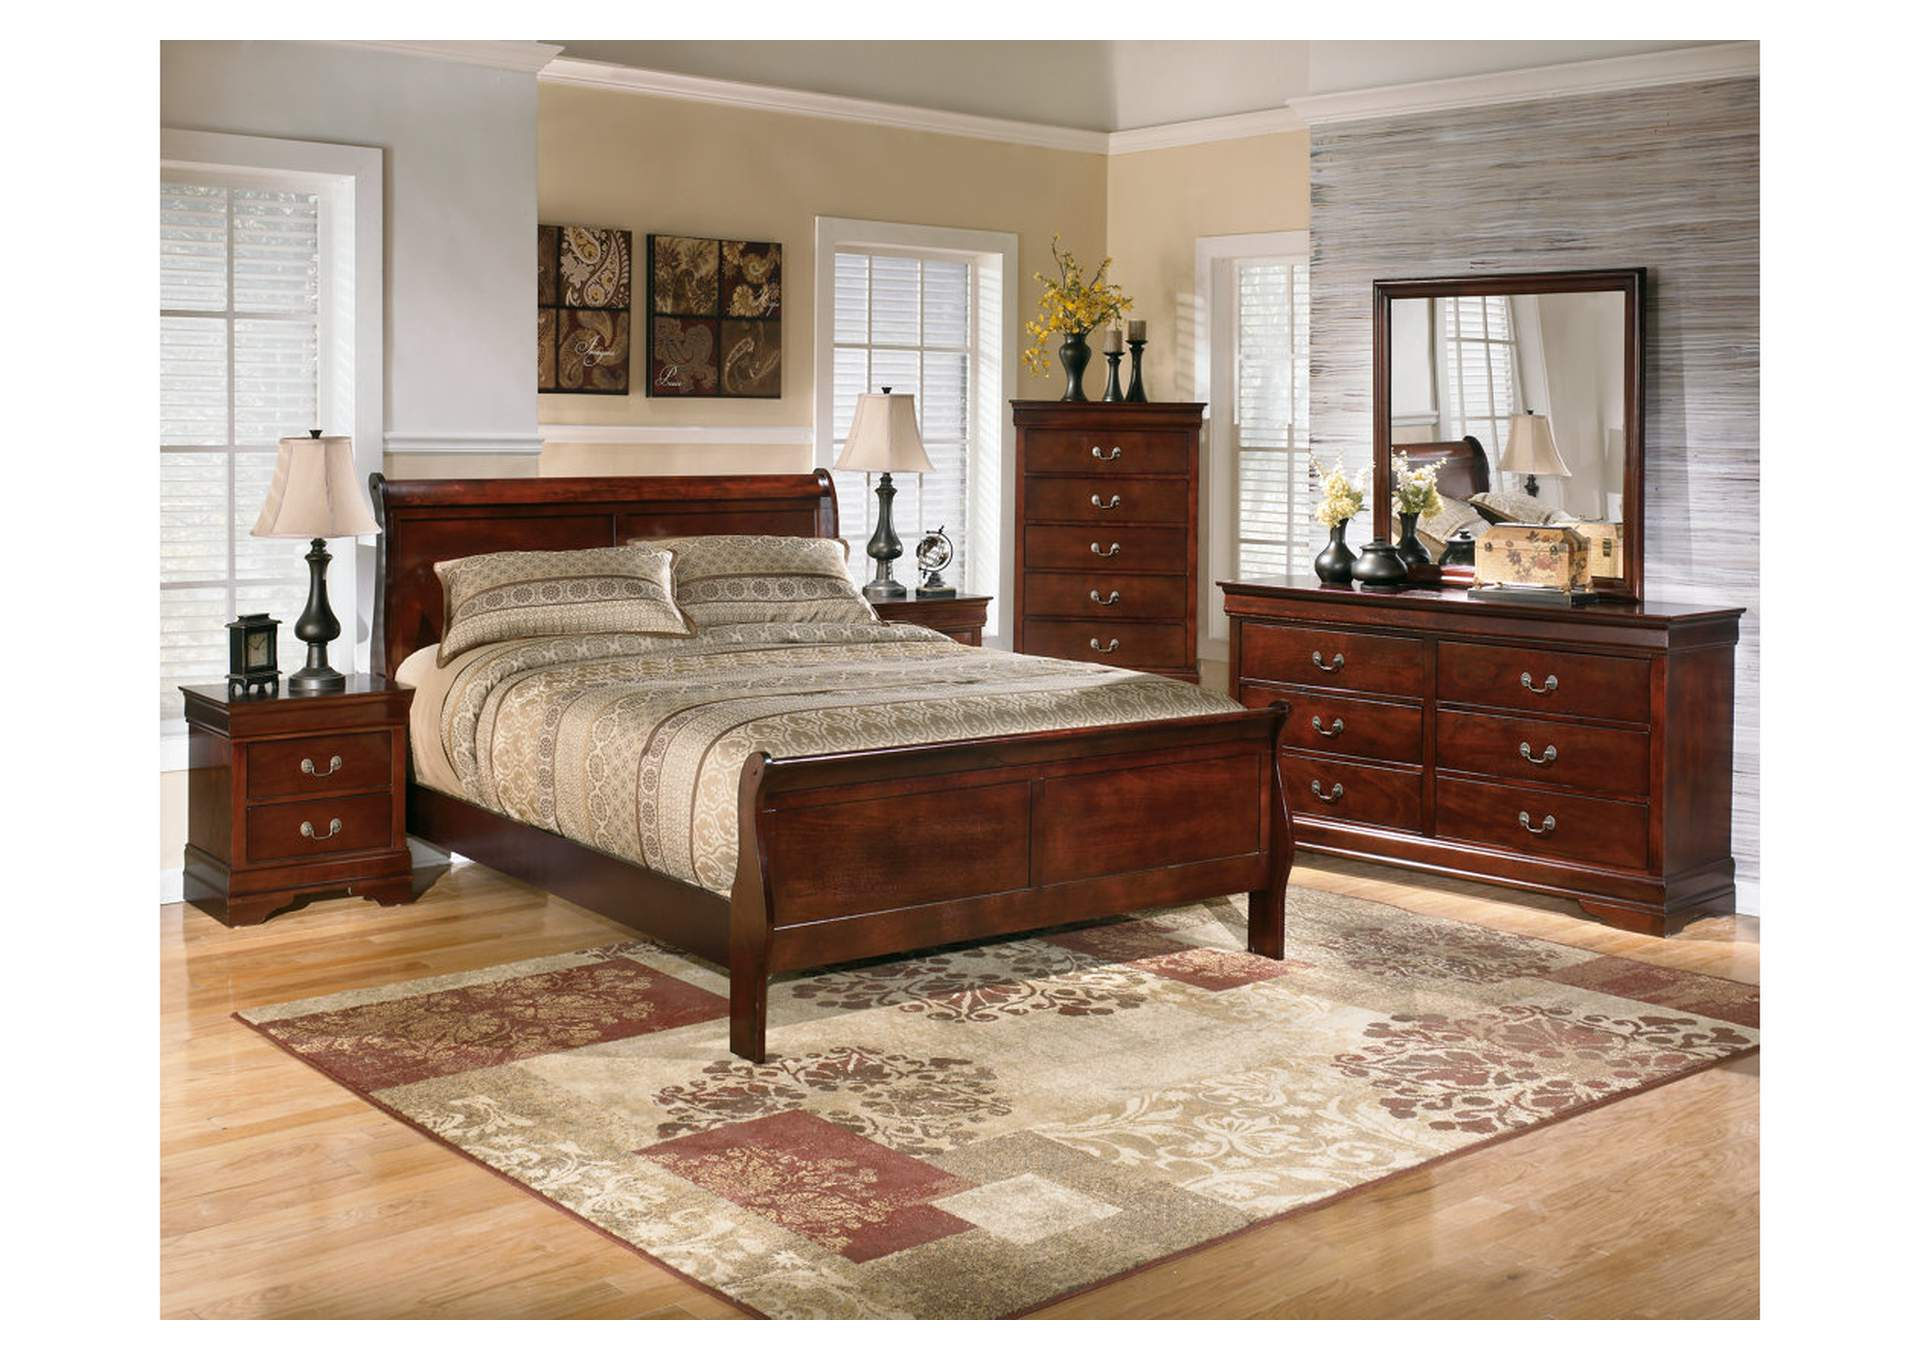 Alisdair King Sleigh Bed, Dresser & Mirror,Signature Design By Ashley